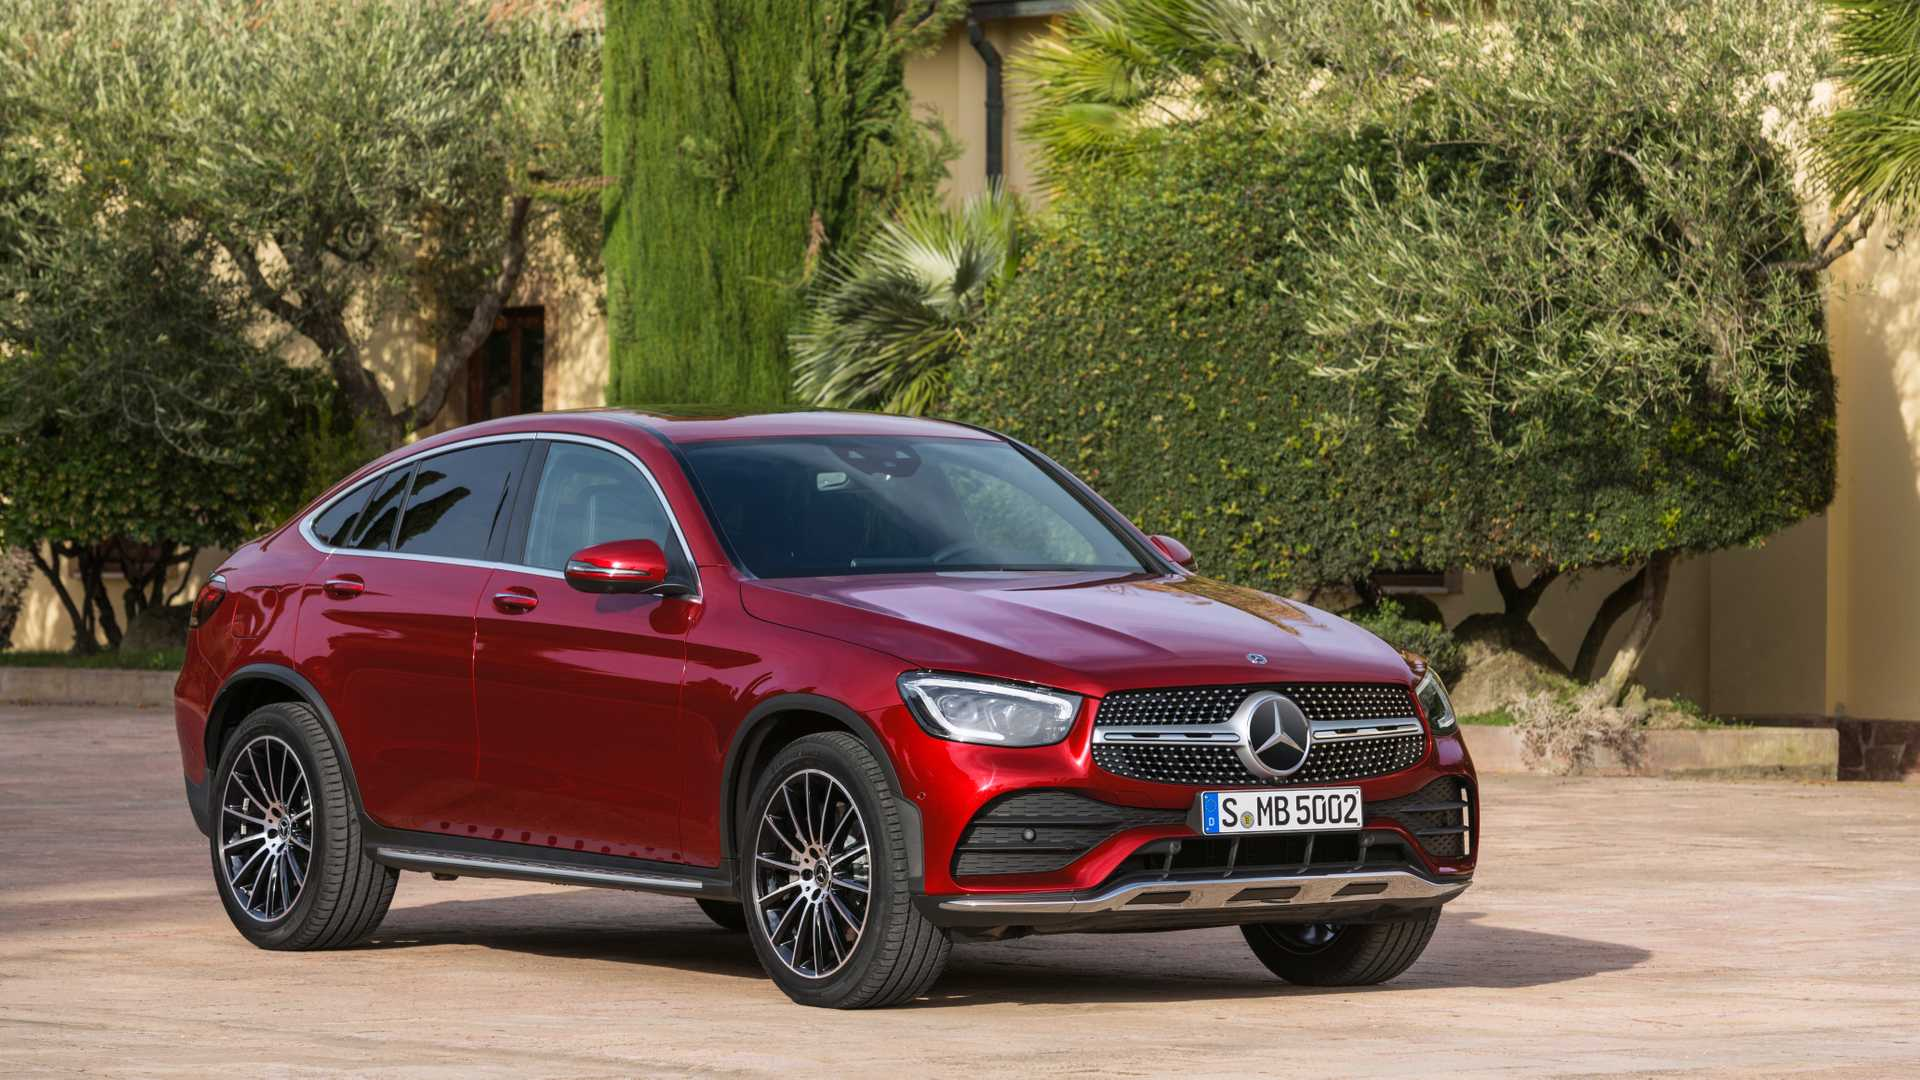 Mercedes-Benz has held a live online reveal event dedicated to its facelifted GLC SUV coupe